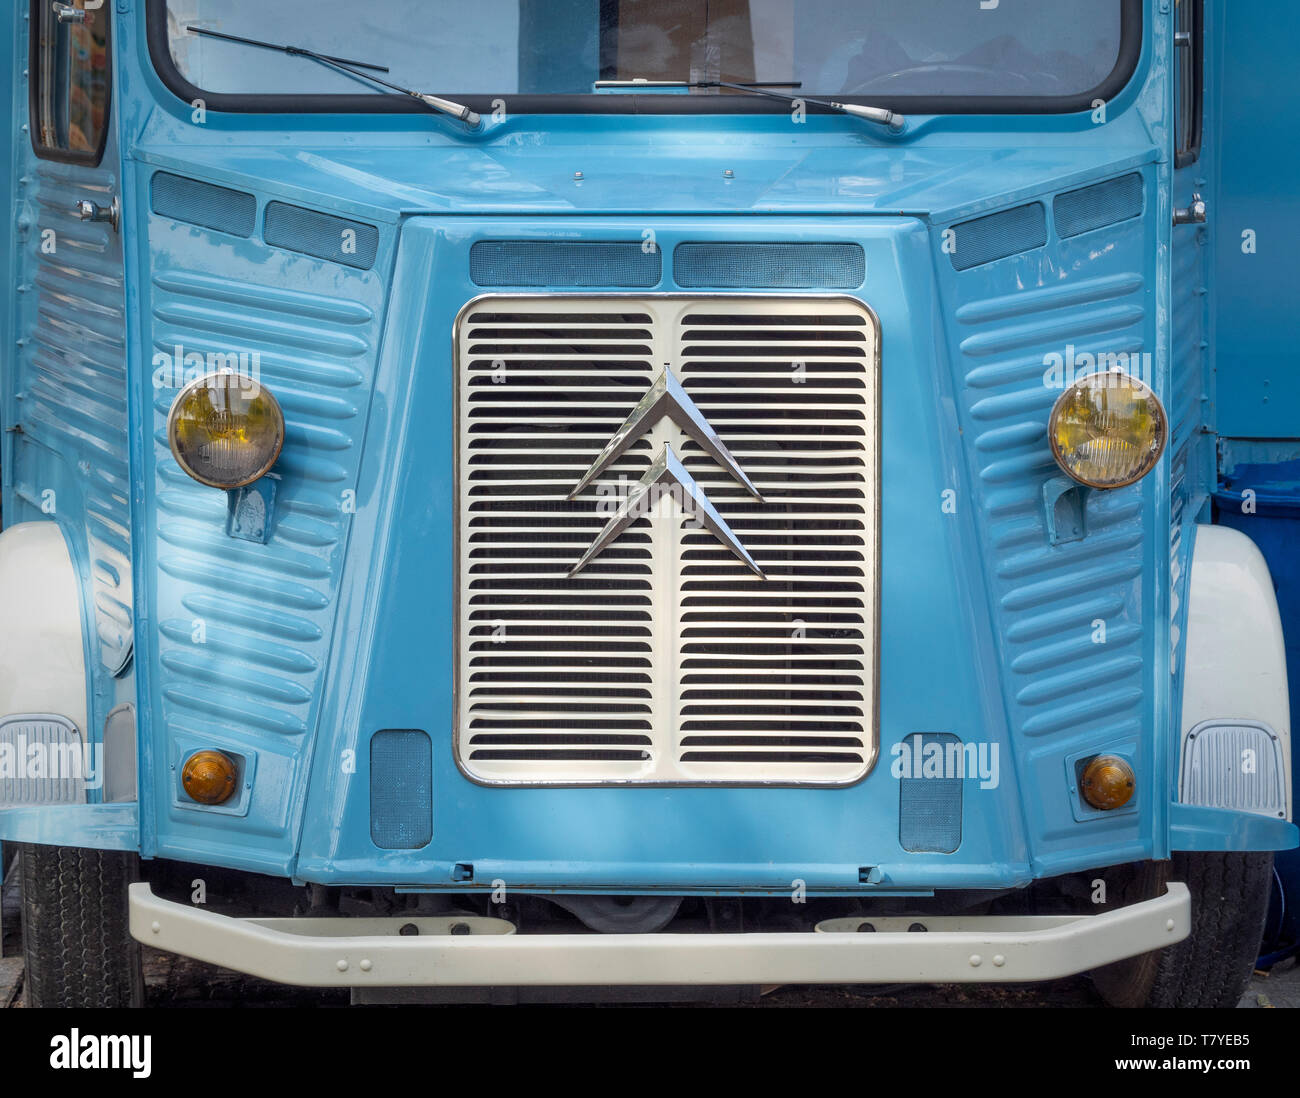 Front radiator grill and badge on vintage Citroen van - Stock Image